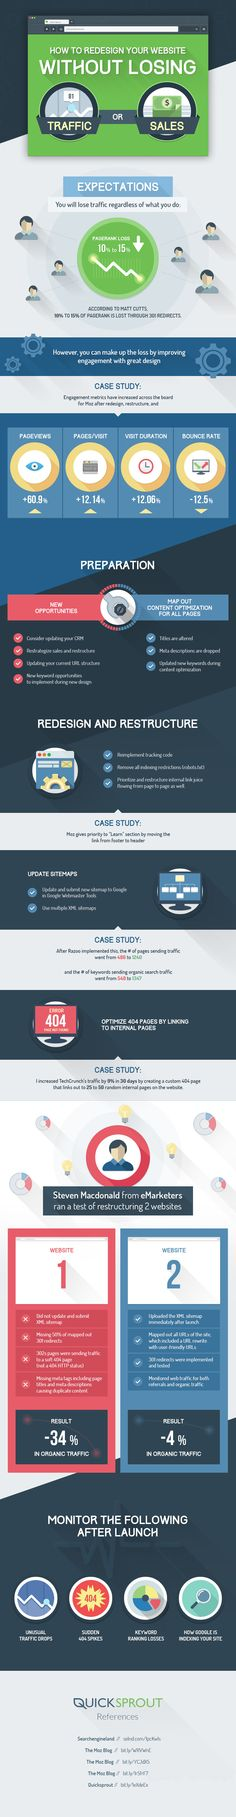 How to Redesign Your Website Without Losing Traffic or Sales #infographic #Website #Design #Sales #HowTo